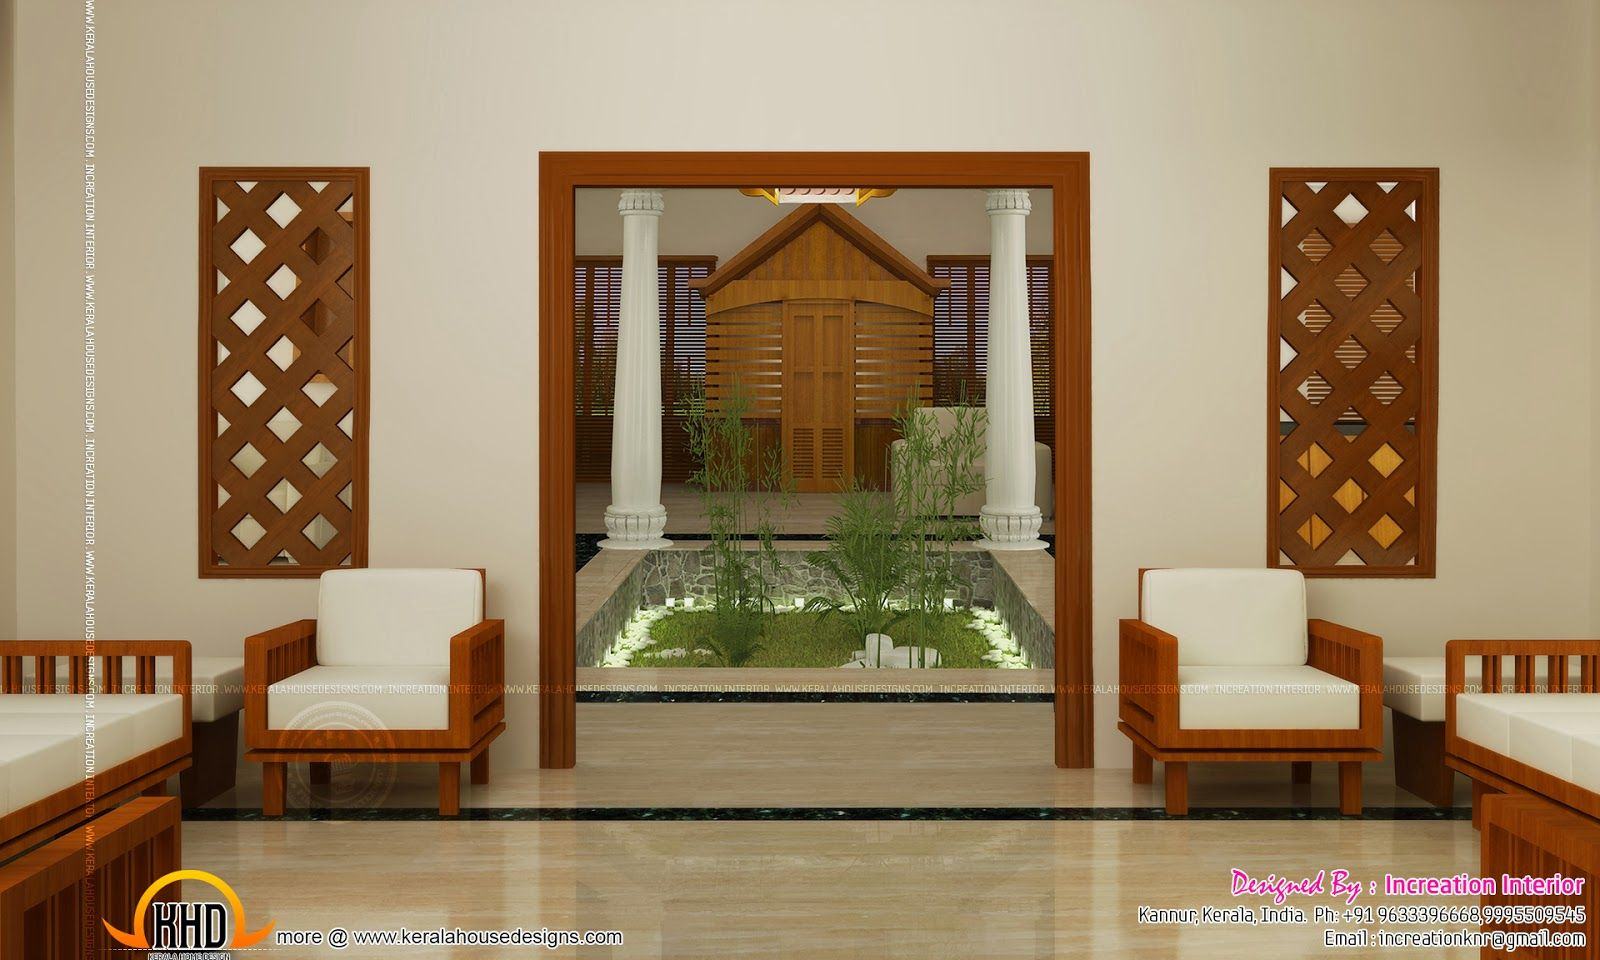 Beautiful houses interior in kerala google search for Simple interior design ideas for indian homes